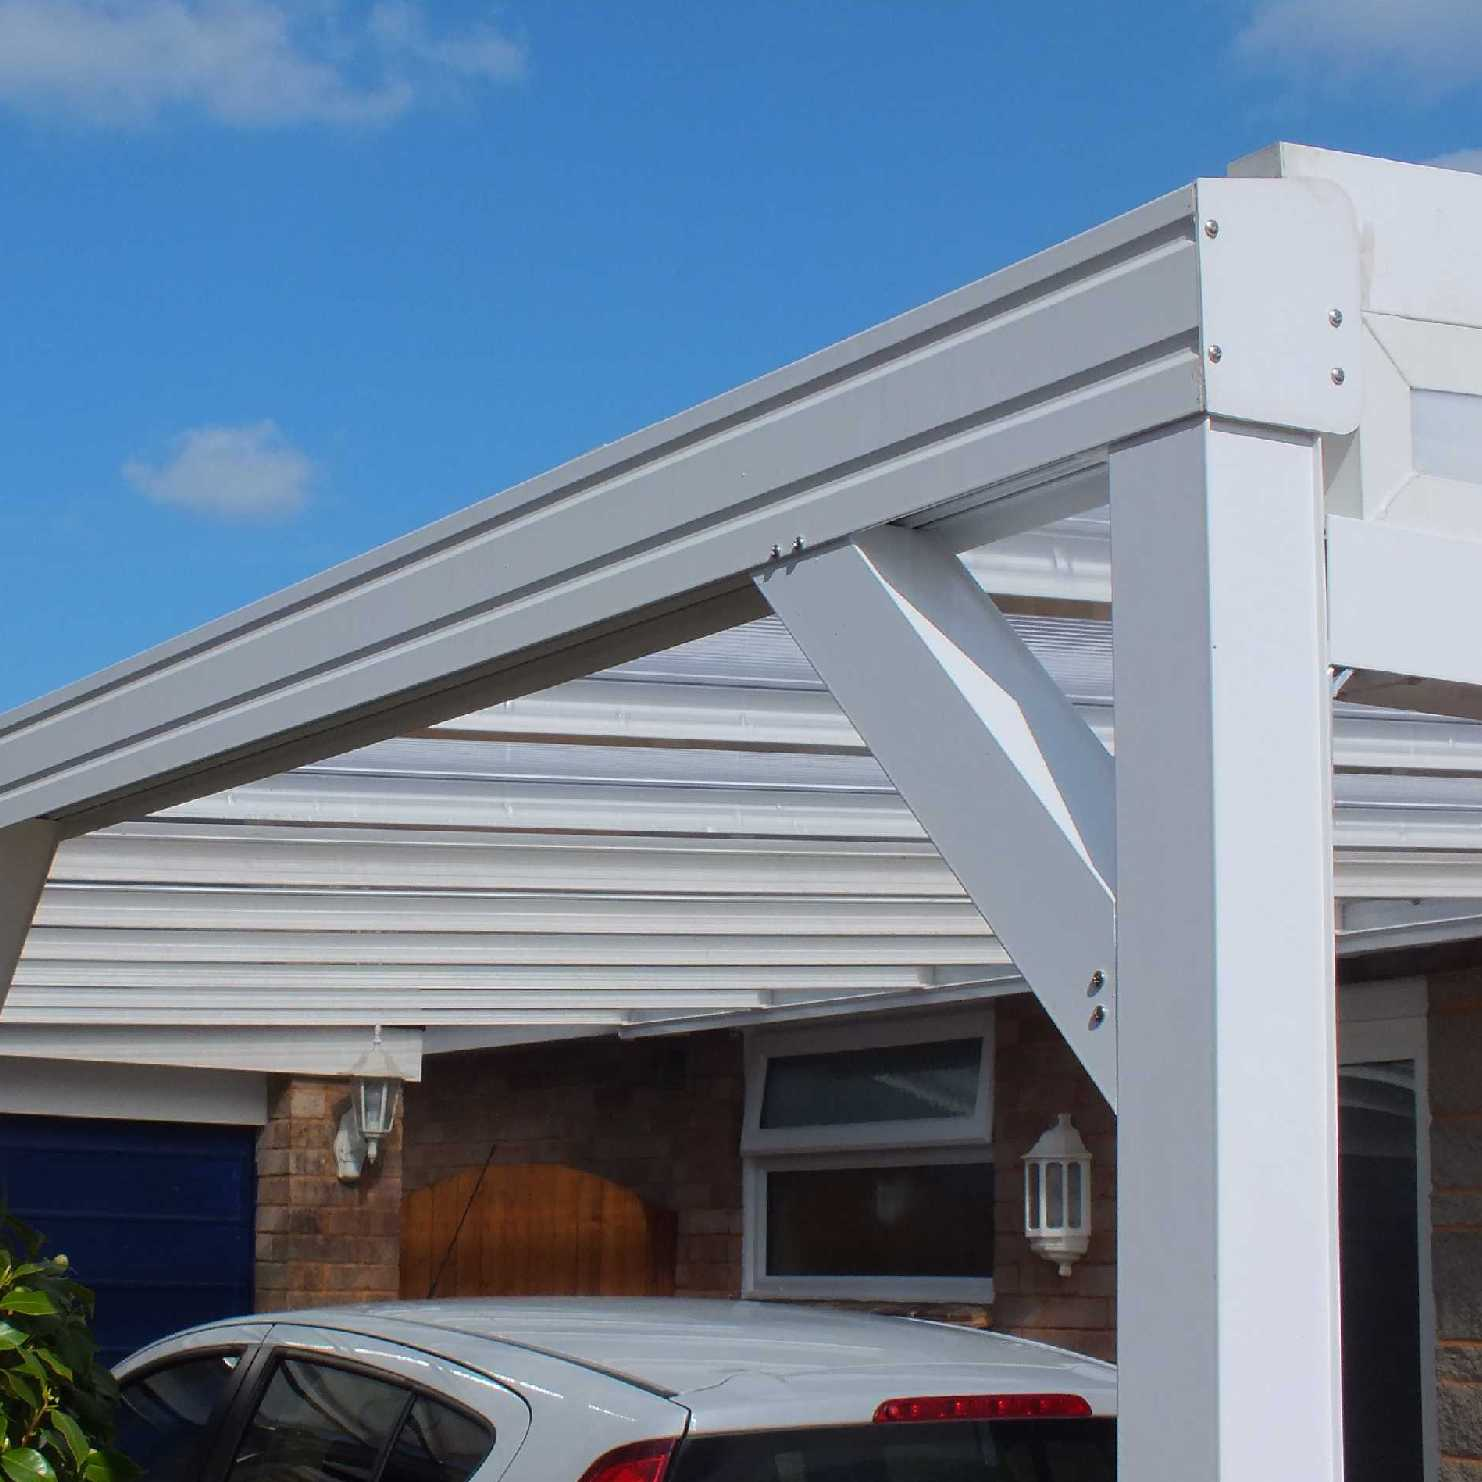 Great deals on Omega Smart White Lean-To Canopy with 16mm Polycarbonate Glazing - 6.0m (W) x 2.0m (P), (3) Supporting Posts